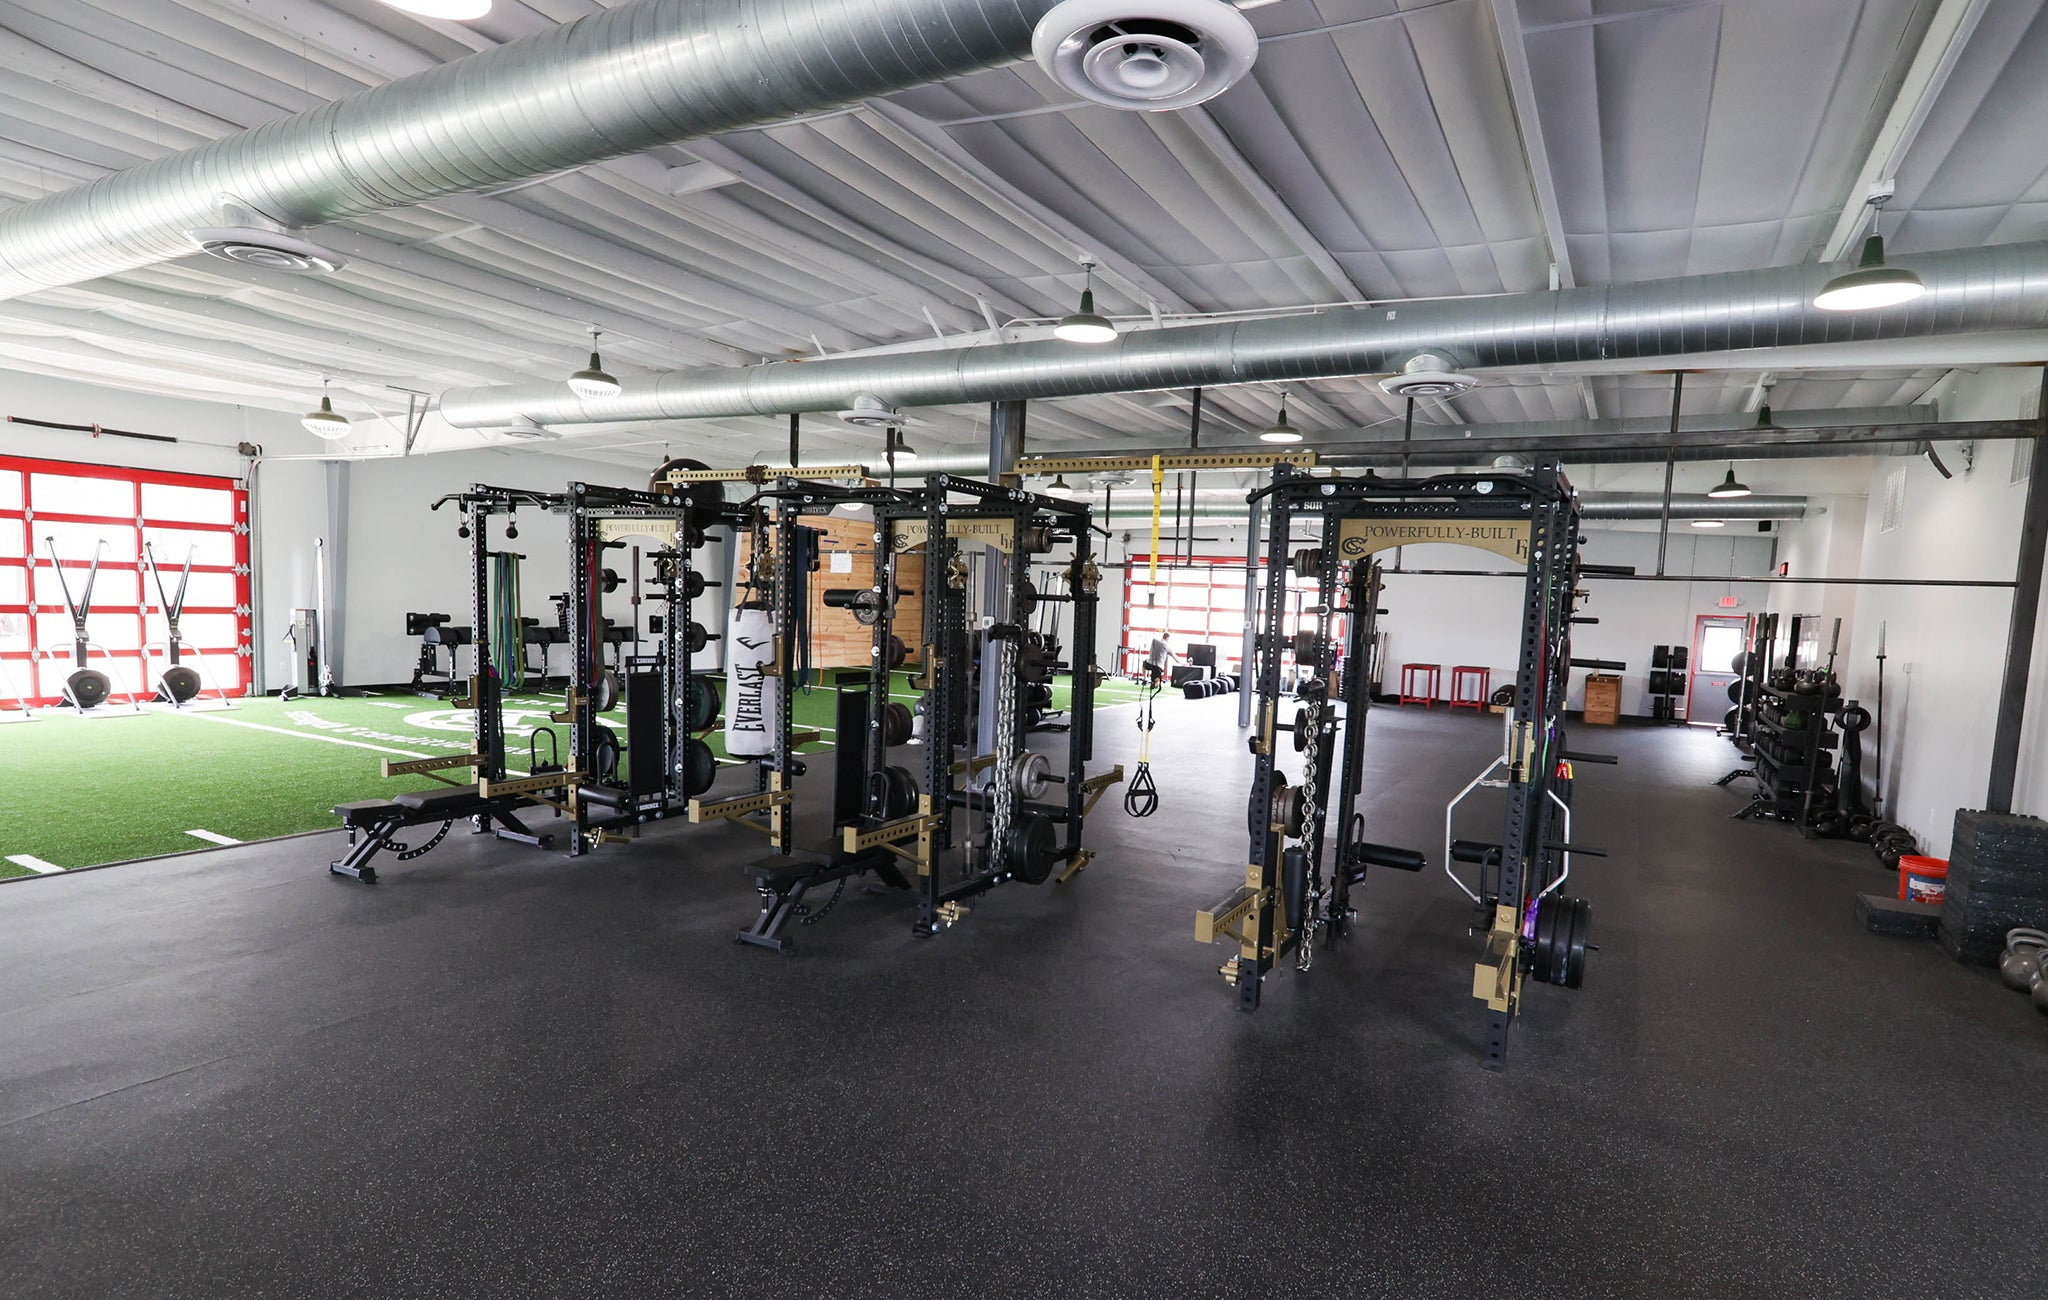 The FieldHouse Texas Weight Room Facility